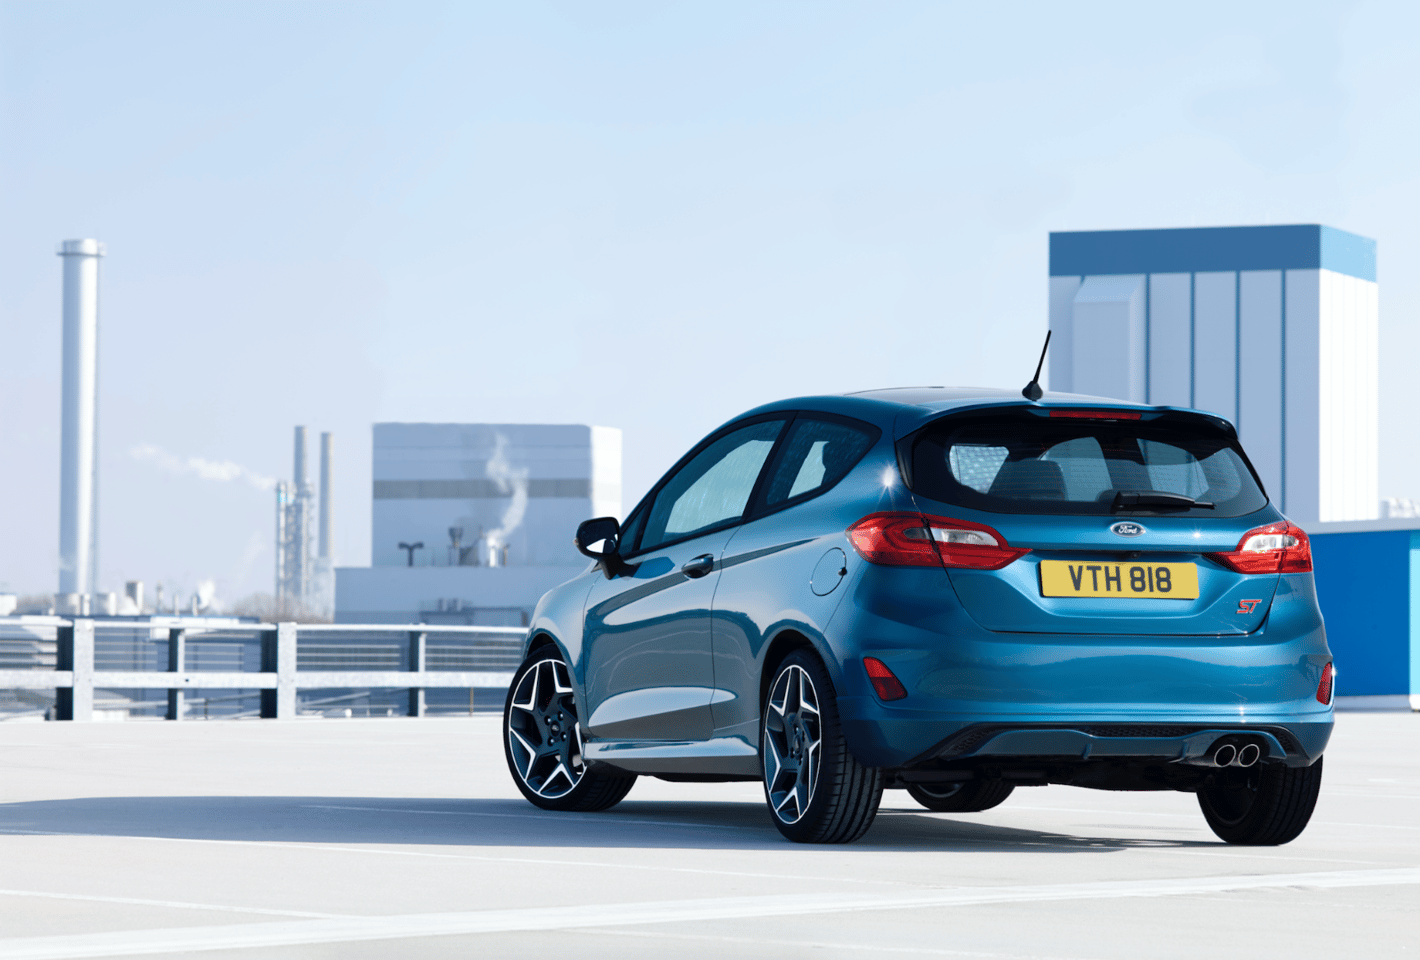 The new FiestaSTis powered by a three-cylinder turbo engine